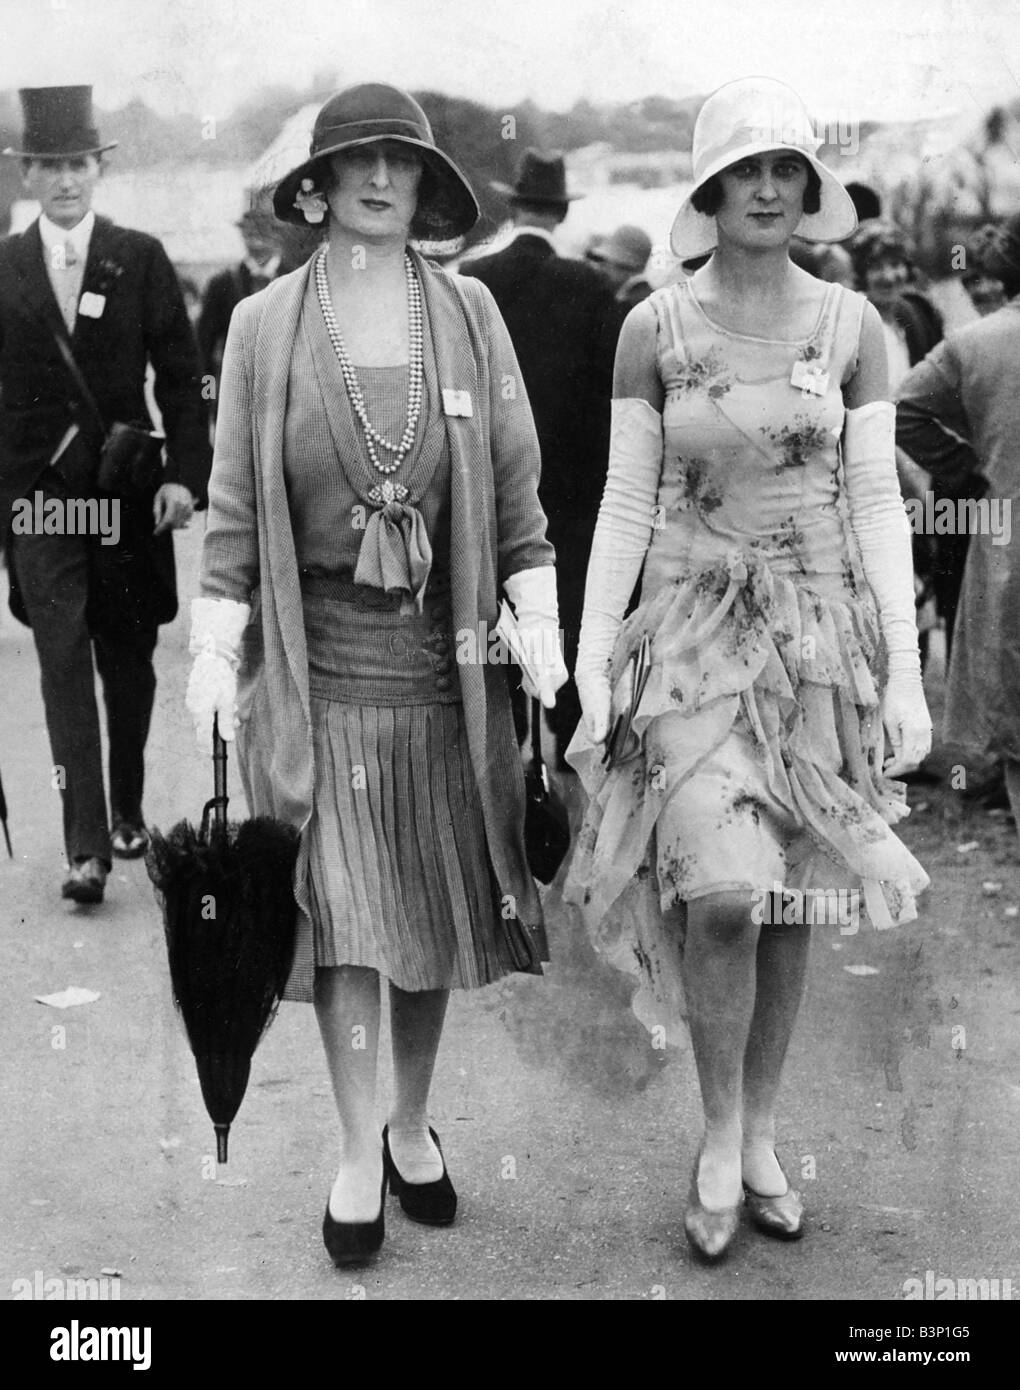 1929 Clothing Ascot Fashions Women wearing dresses with cardigans chiffon  ruffle skirt detail long gloves carrying an umbrella